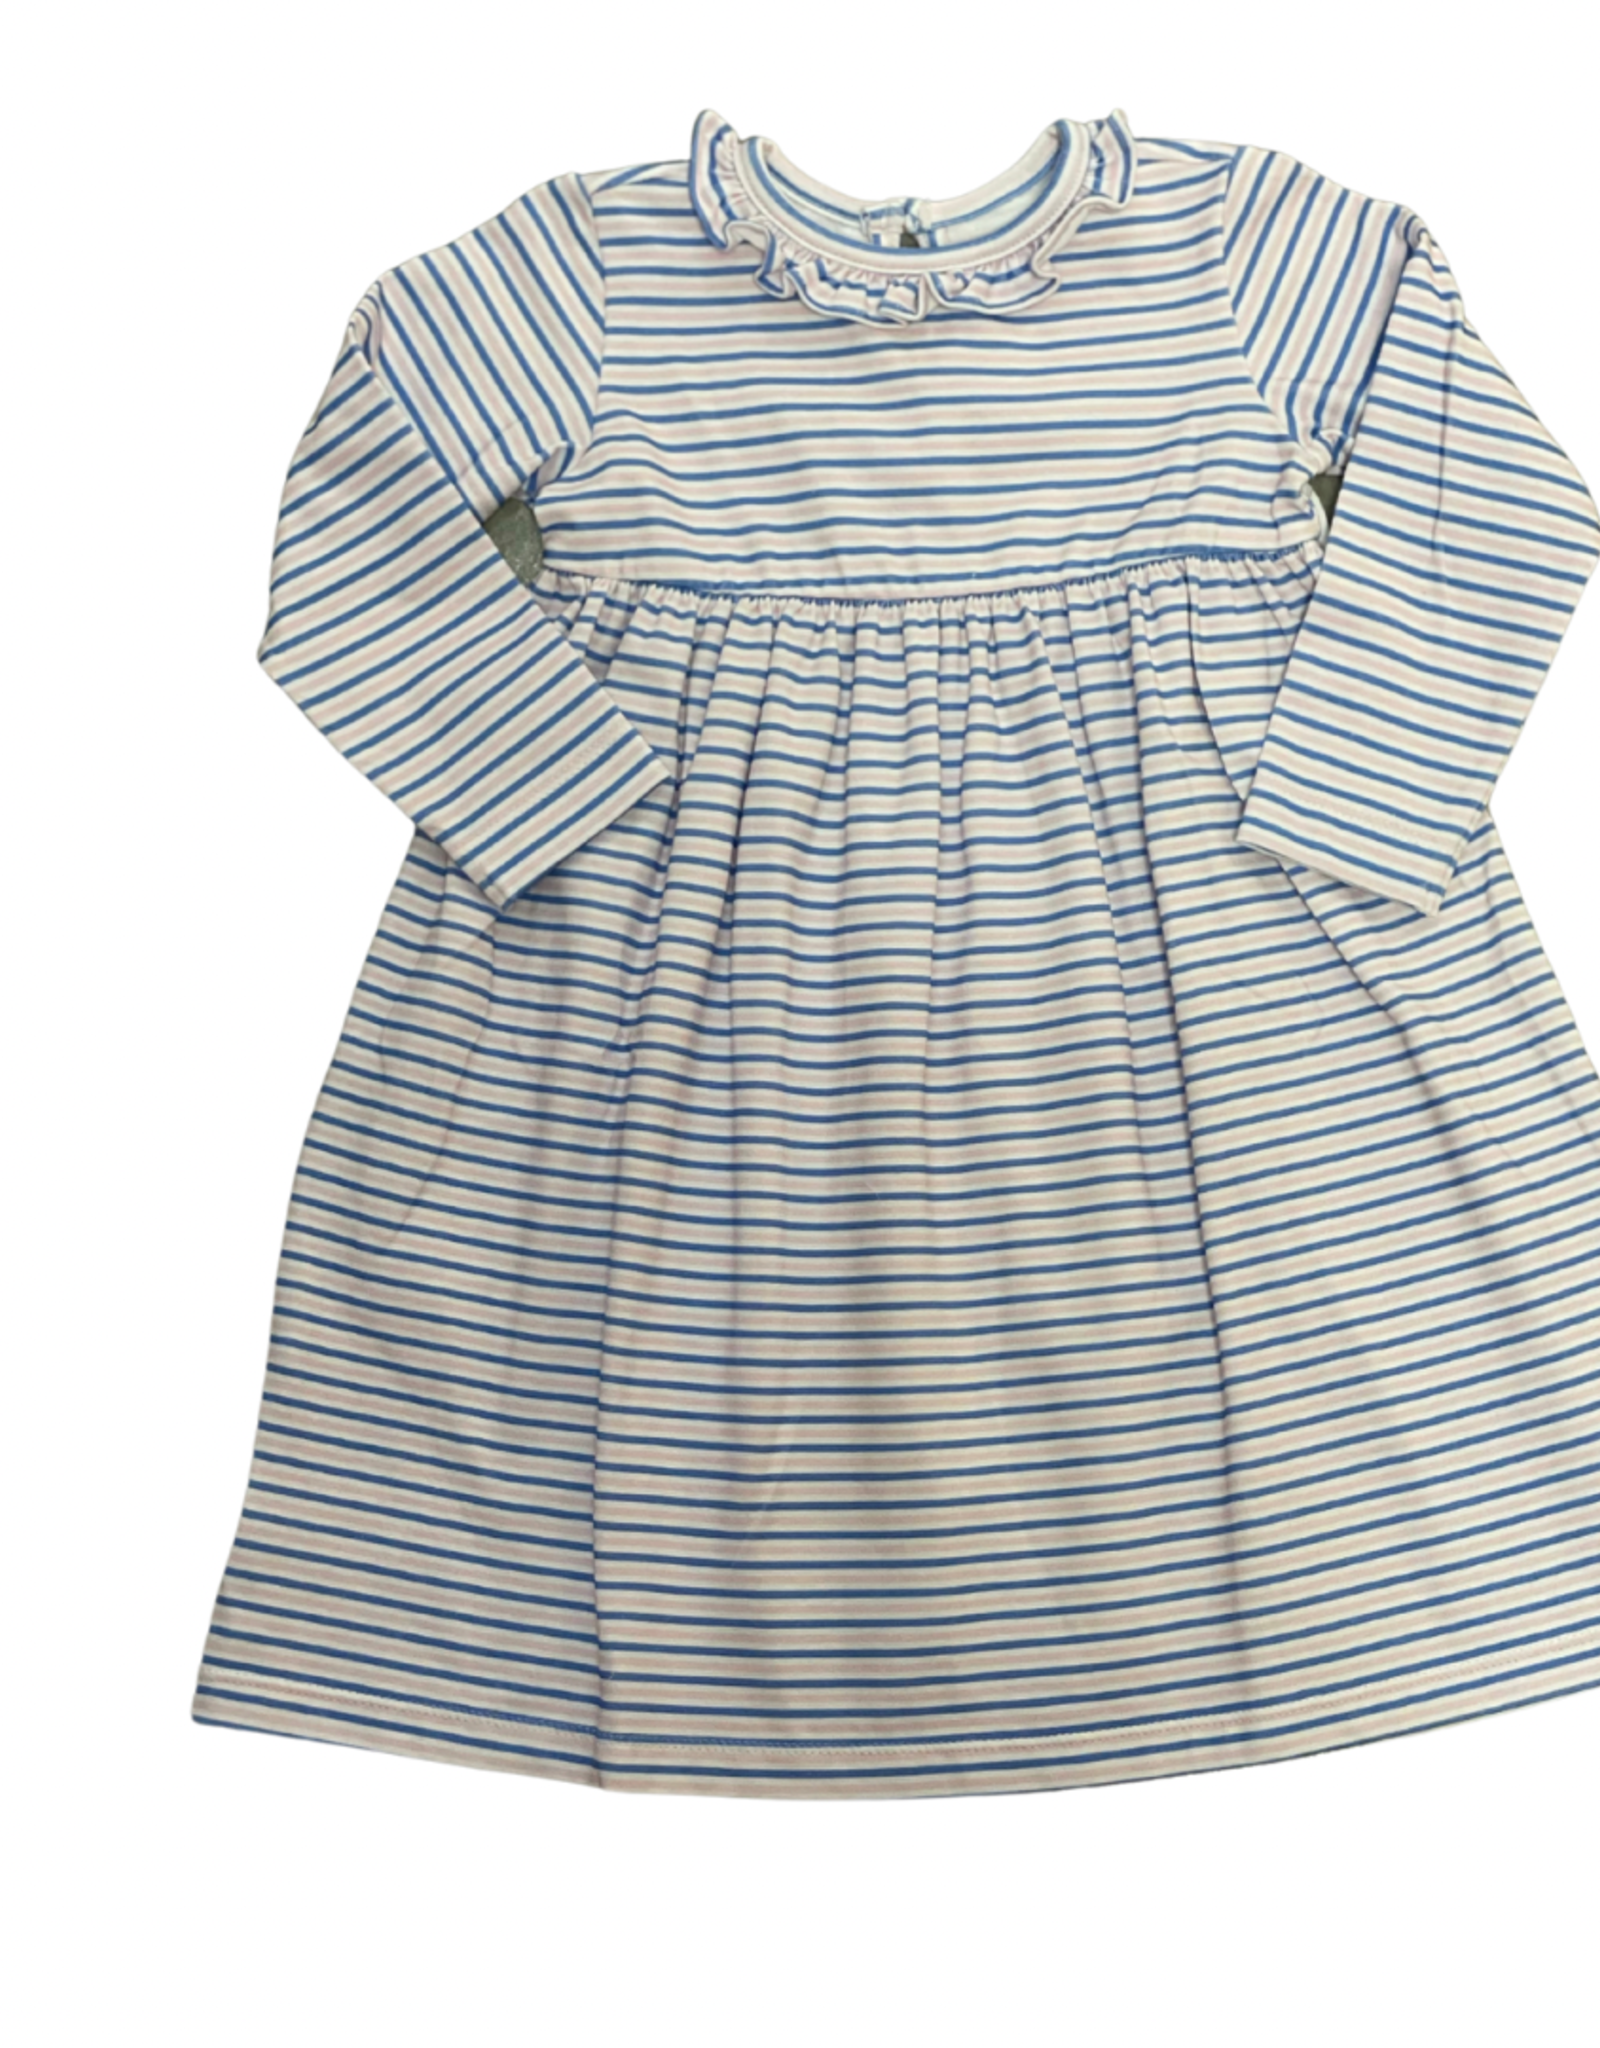 Peggy Green Long Sleeve CiCi Dress Baby Pink/Royal Stripe With Ruffle Neck